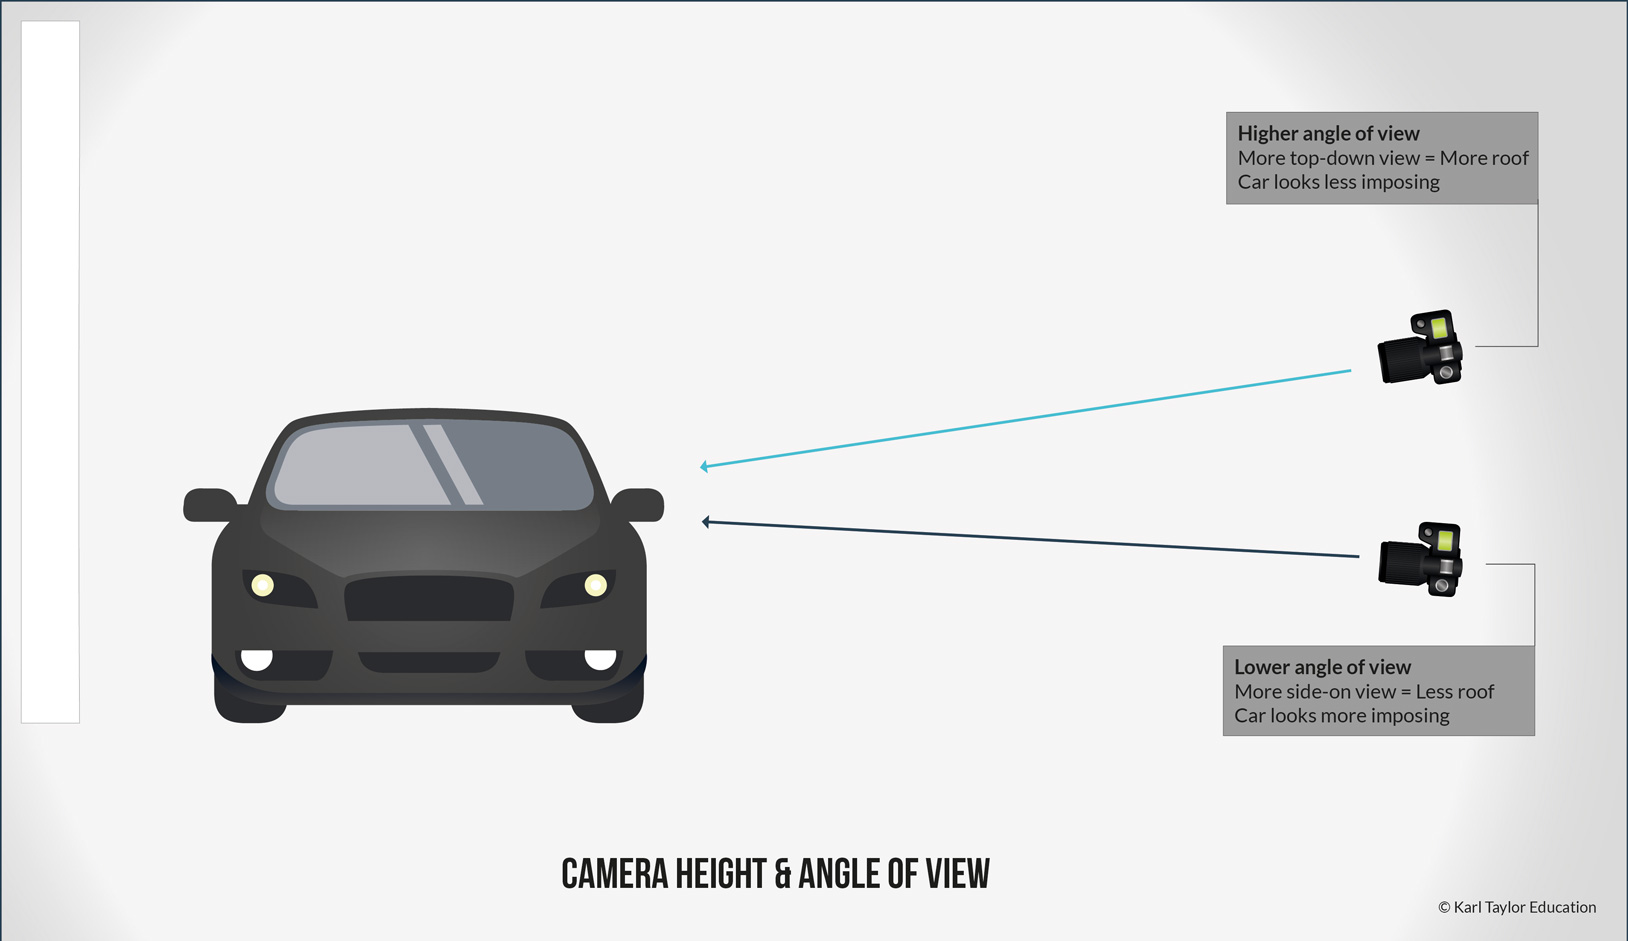 Angle of view for car photography